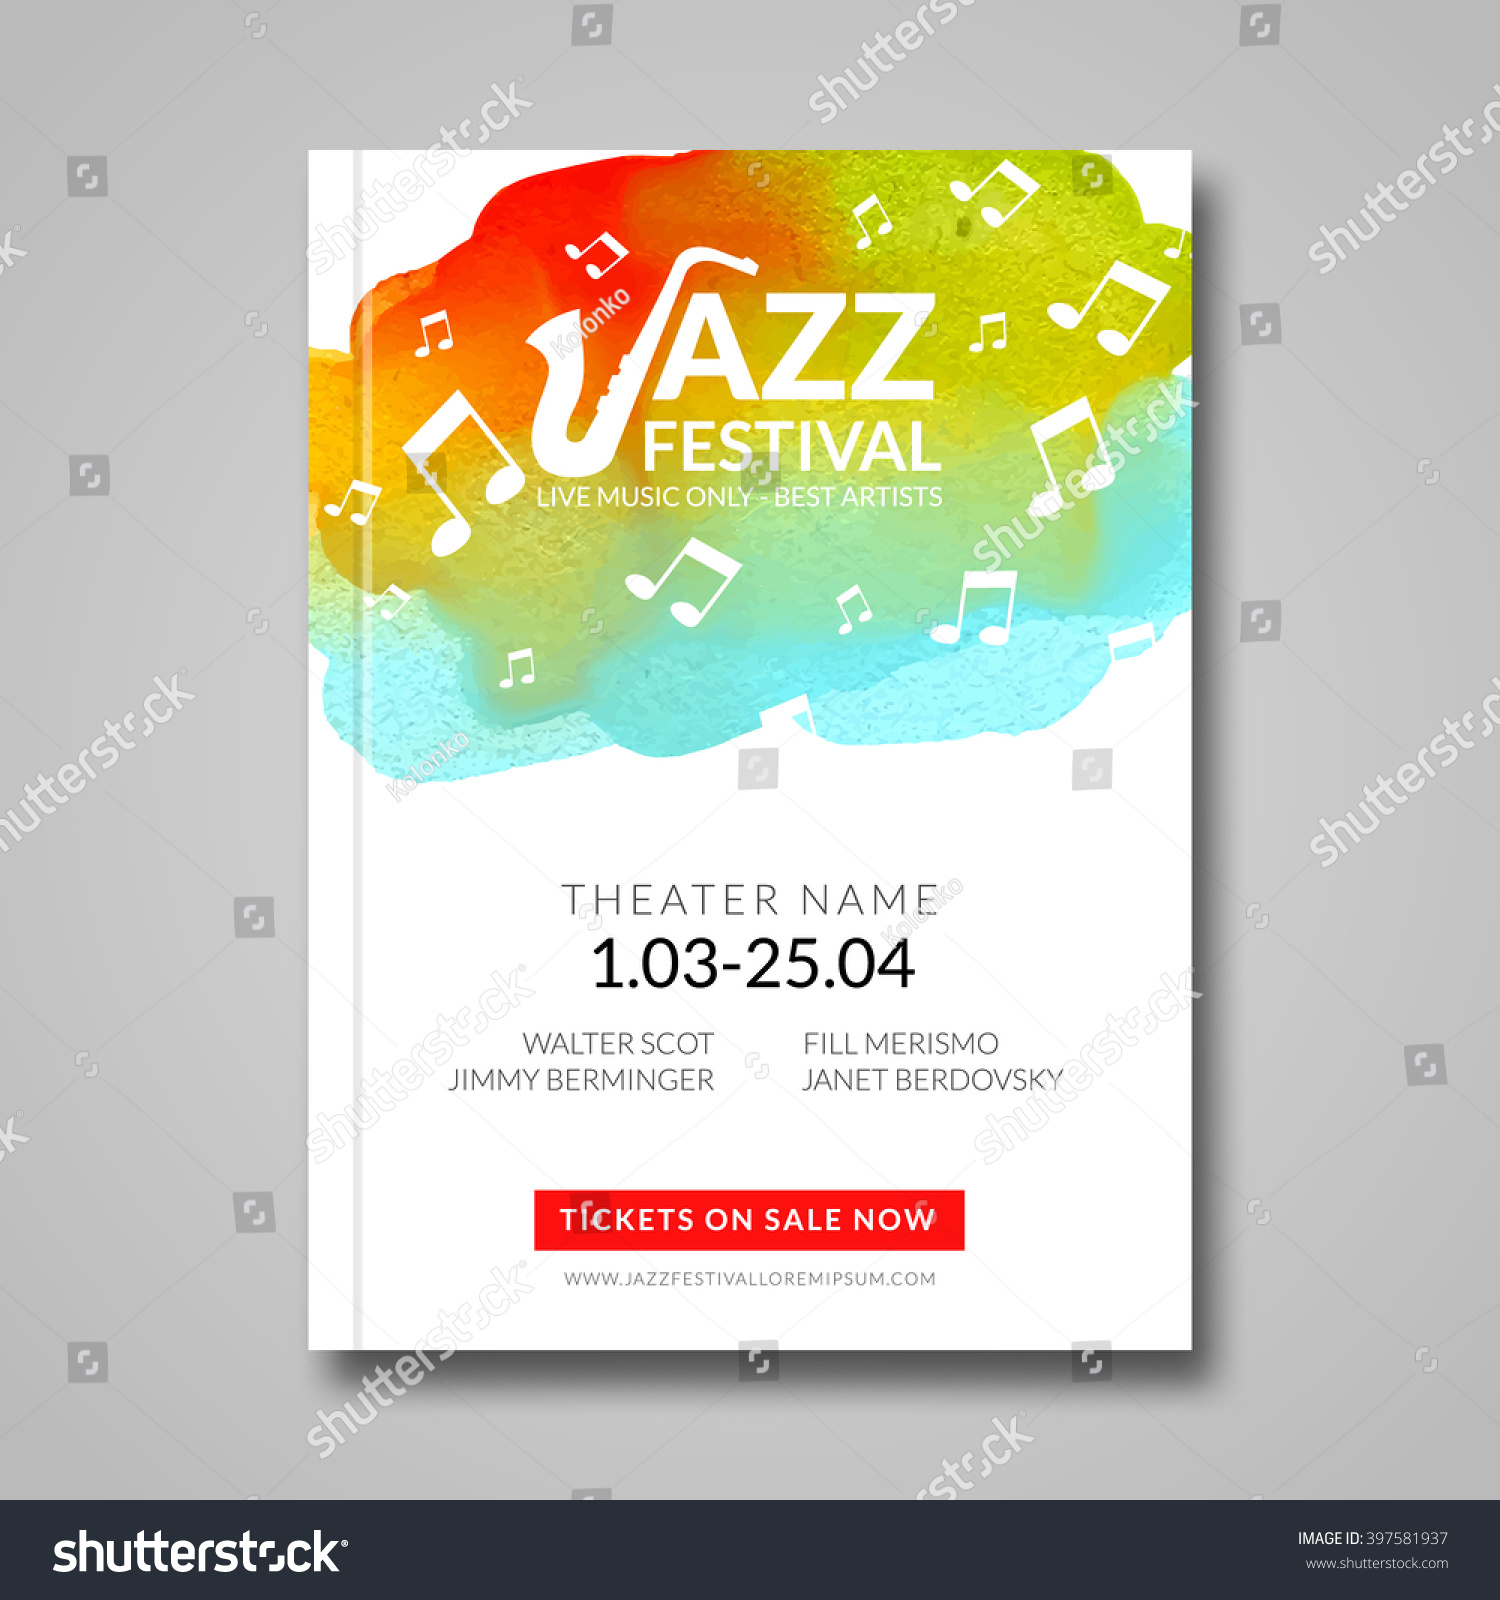 1 color poster design - 1 Color Poster Design Vector Musical Poster Design Watercolor Stain Background Jazz Rock Style Billboard